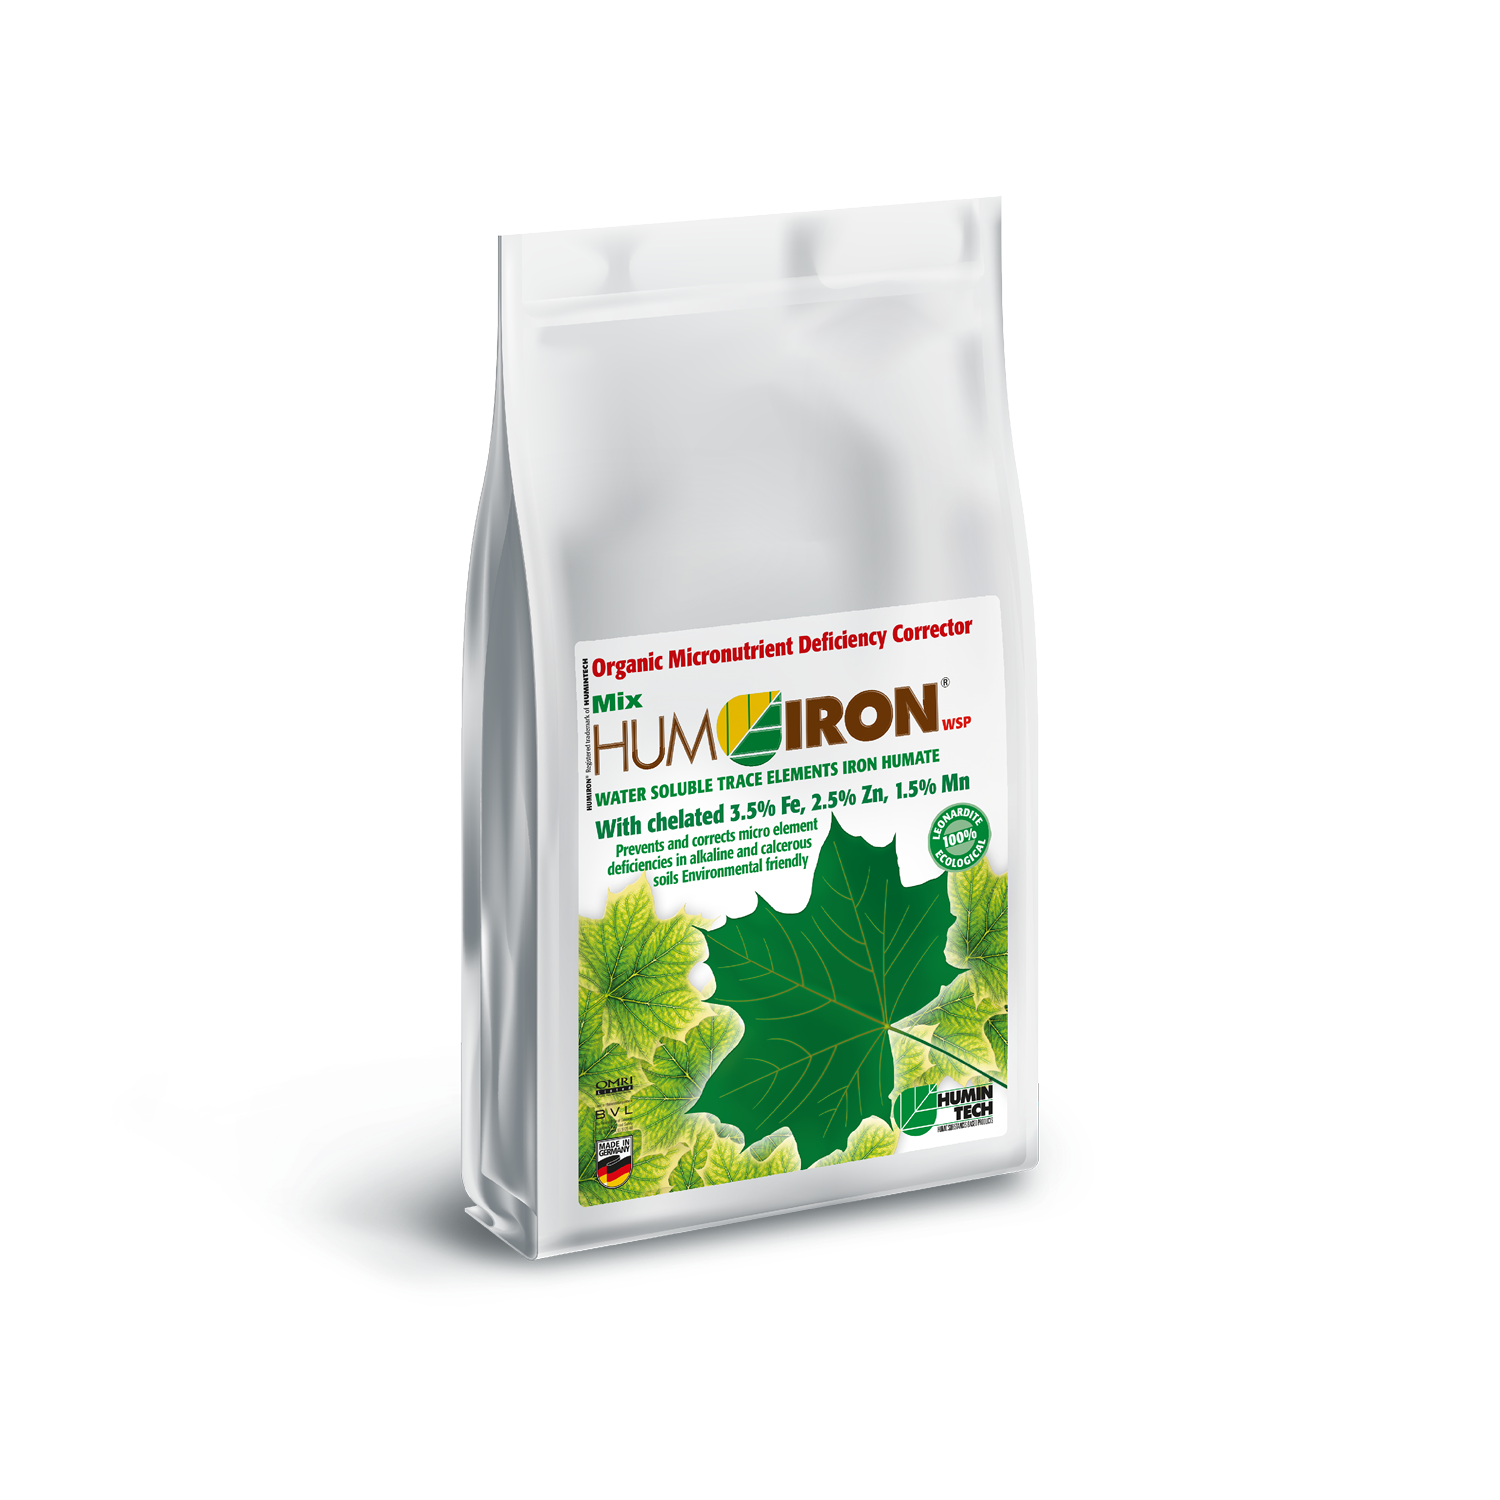 HUMIRON Mix WSP Organic Micronutrient Deficiency Corrector Water Soluble Trace Elements Humate bag